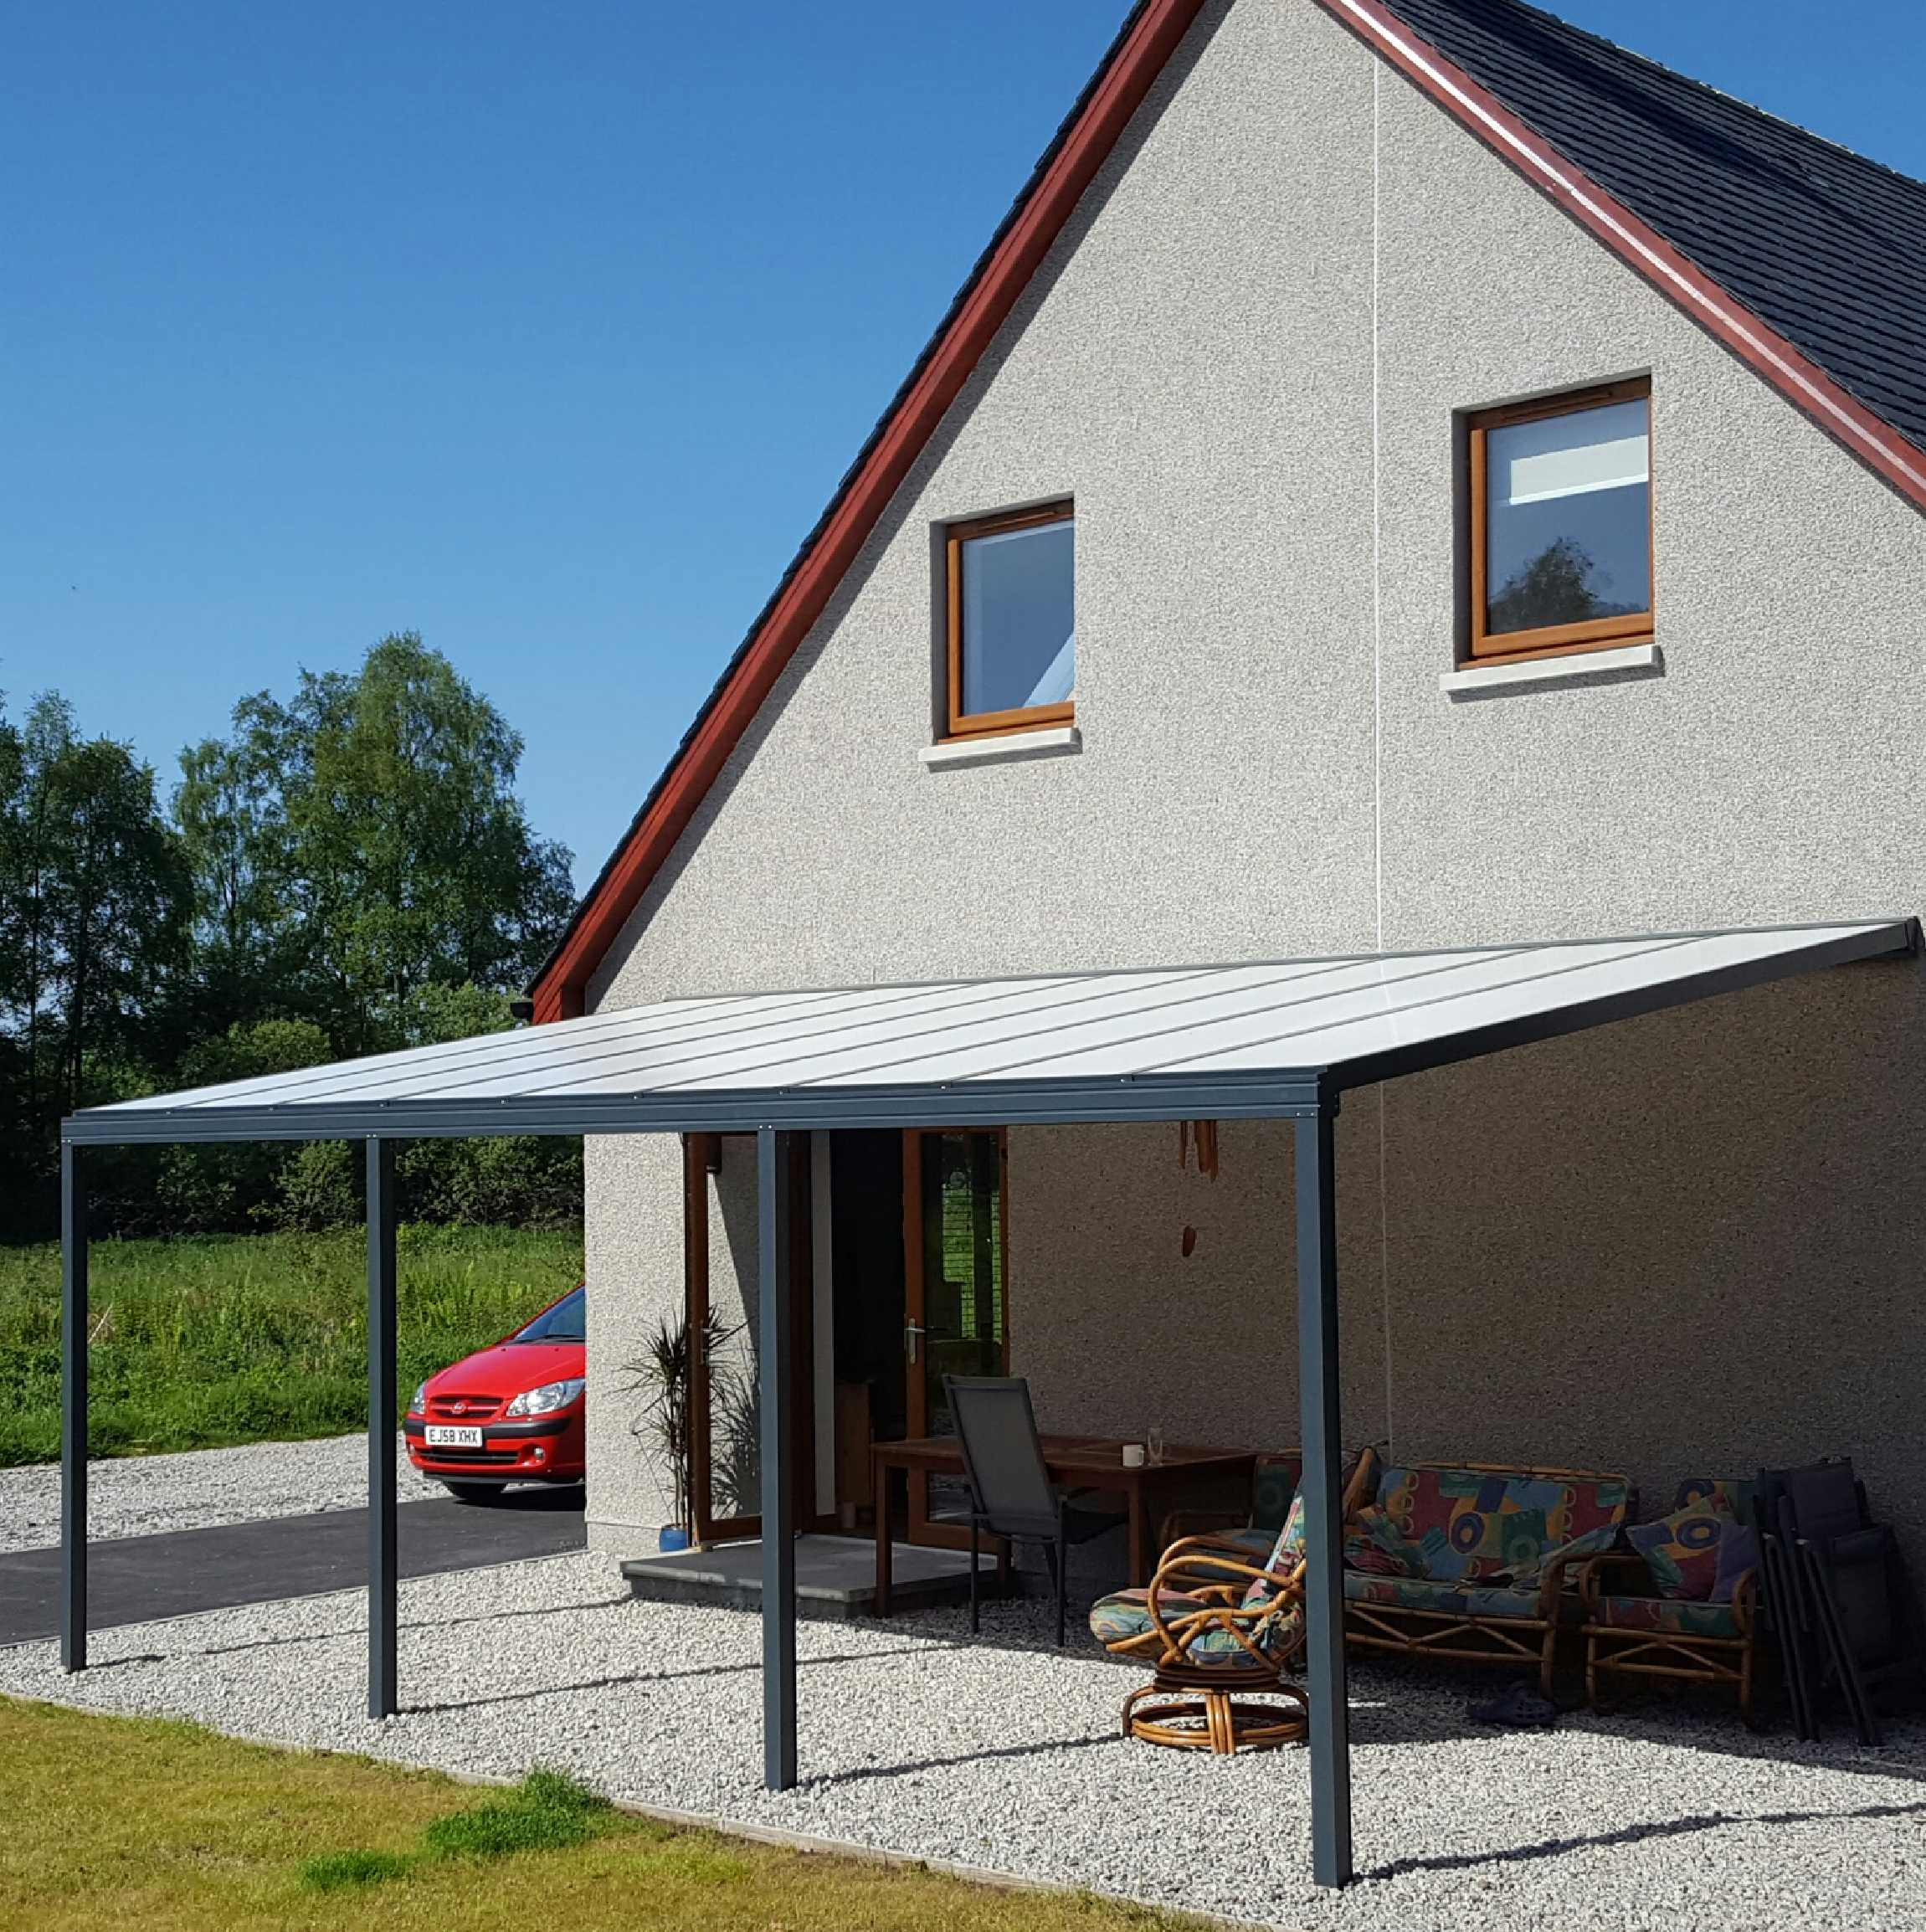 Great selection of Omega Smart Lean-To Canopy, Anthracite Grey, 16mm Polycarbonate Glazing - 5.2m (W) x 4.5m (P), (3) Supporting Posts